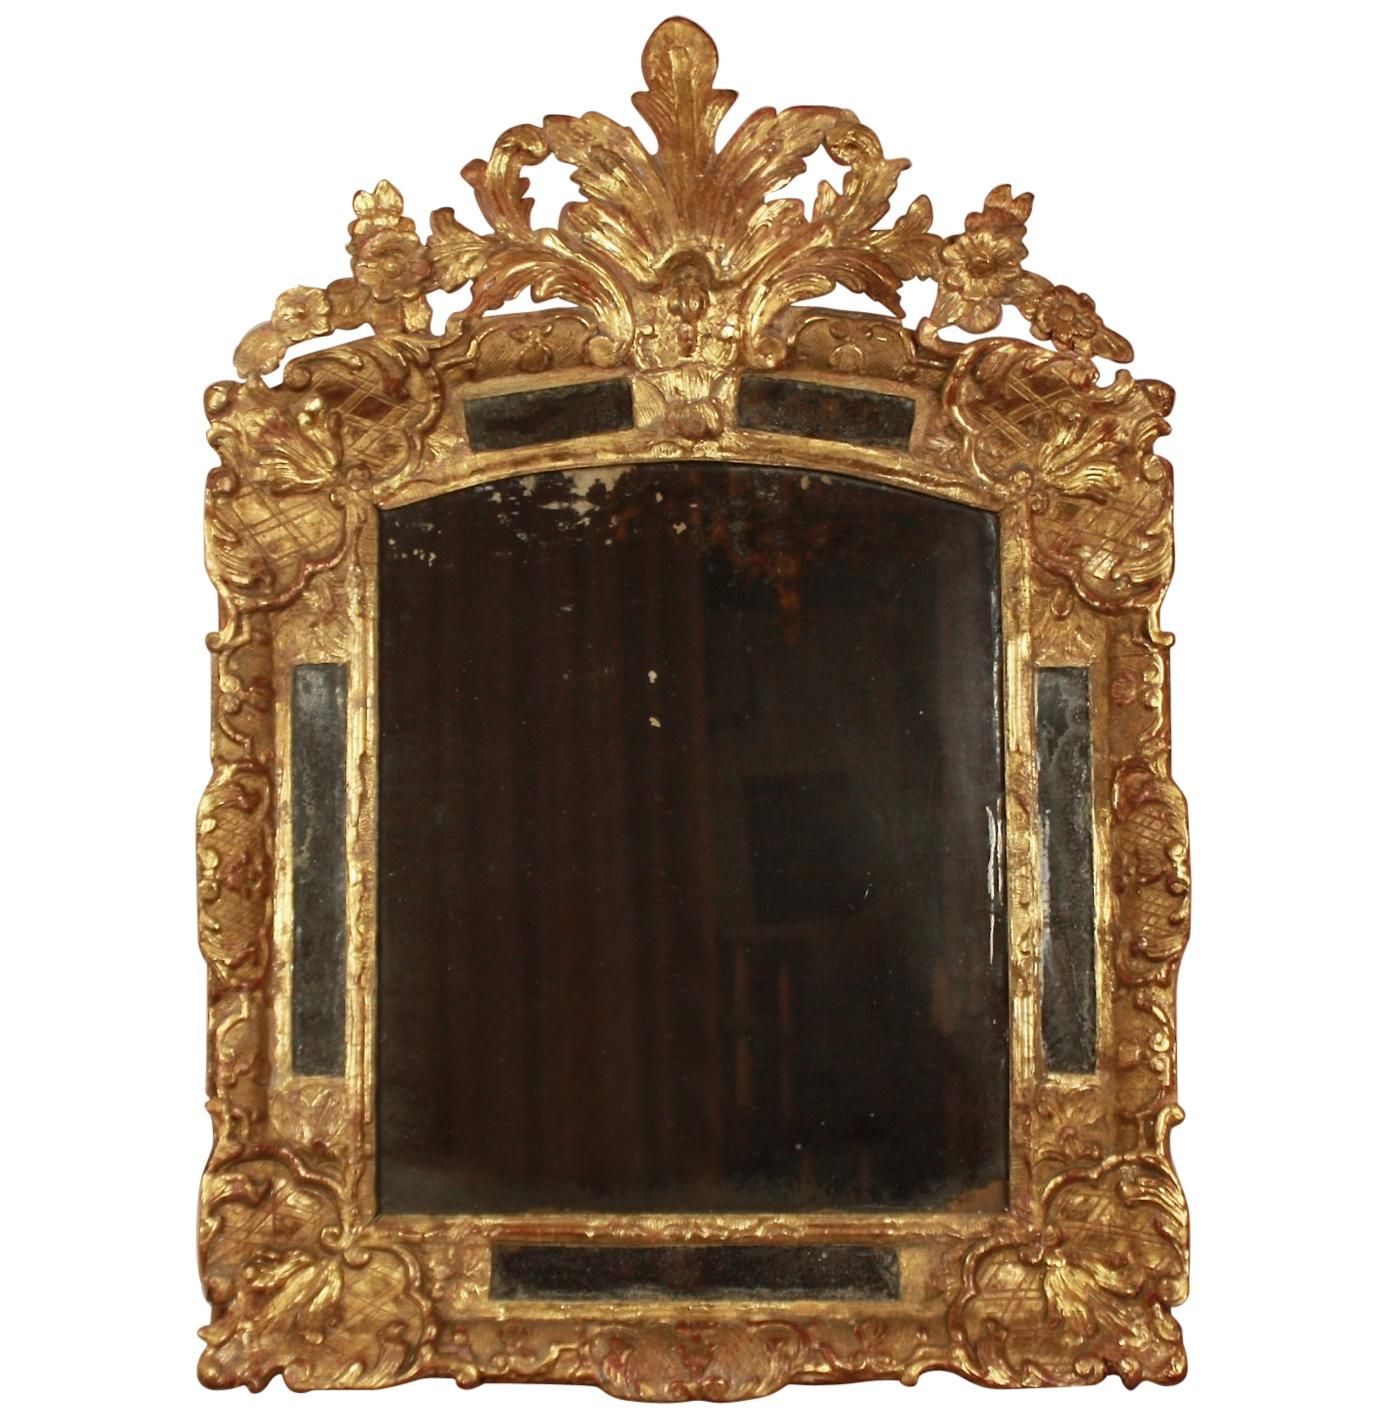 French Early 18th Century Régence Gilt and Carved Wood Mirror